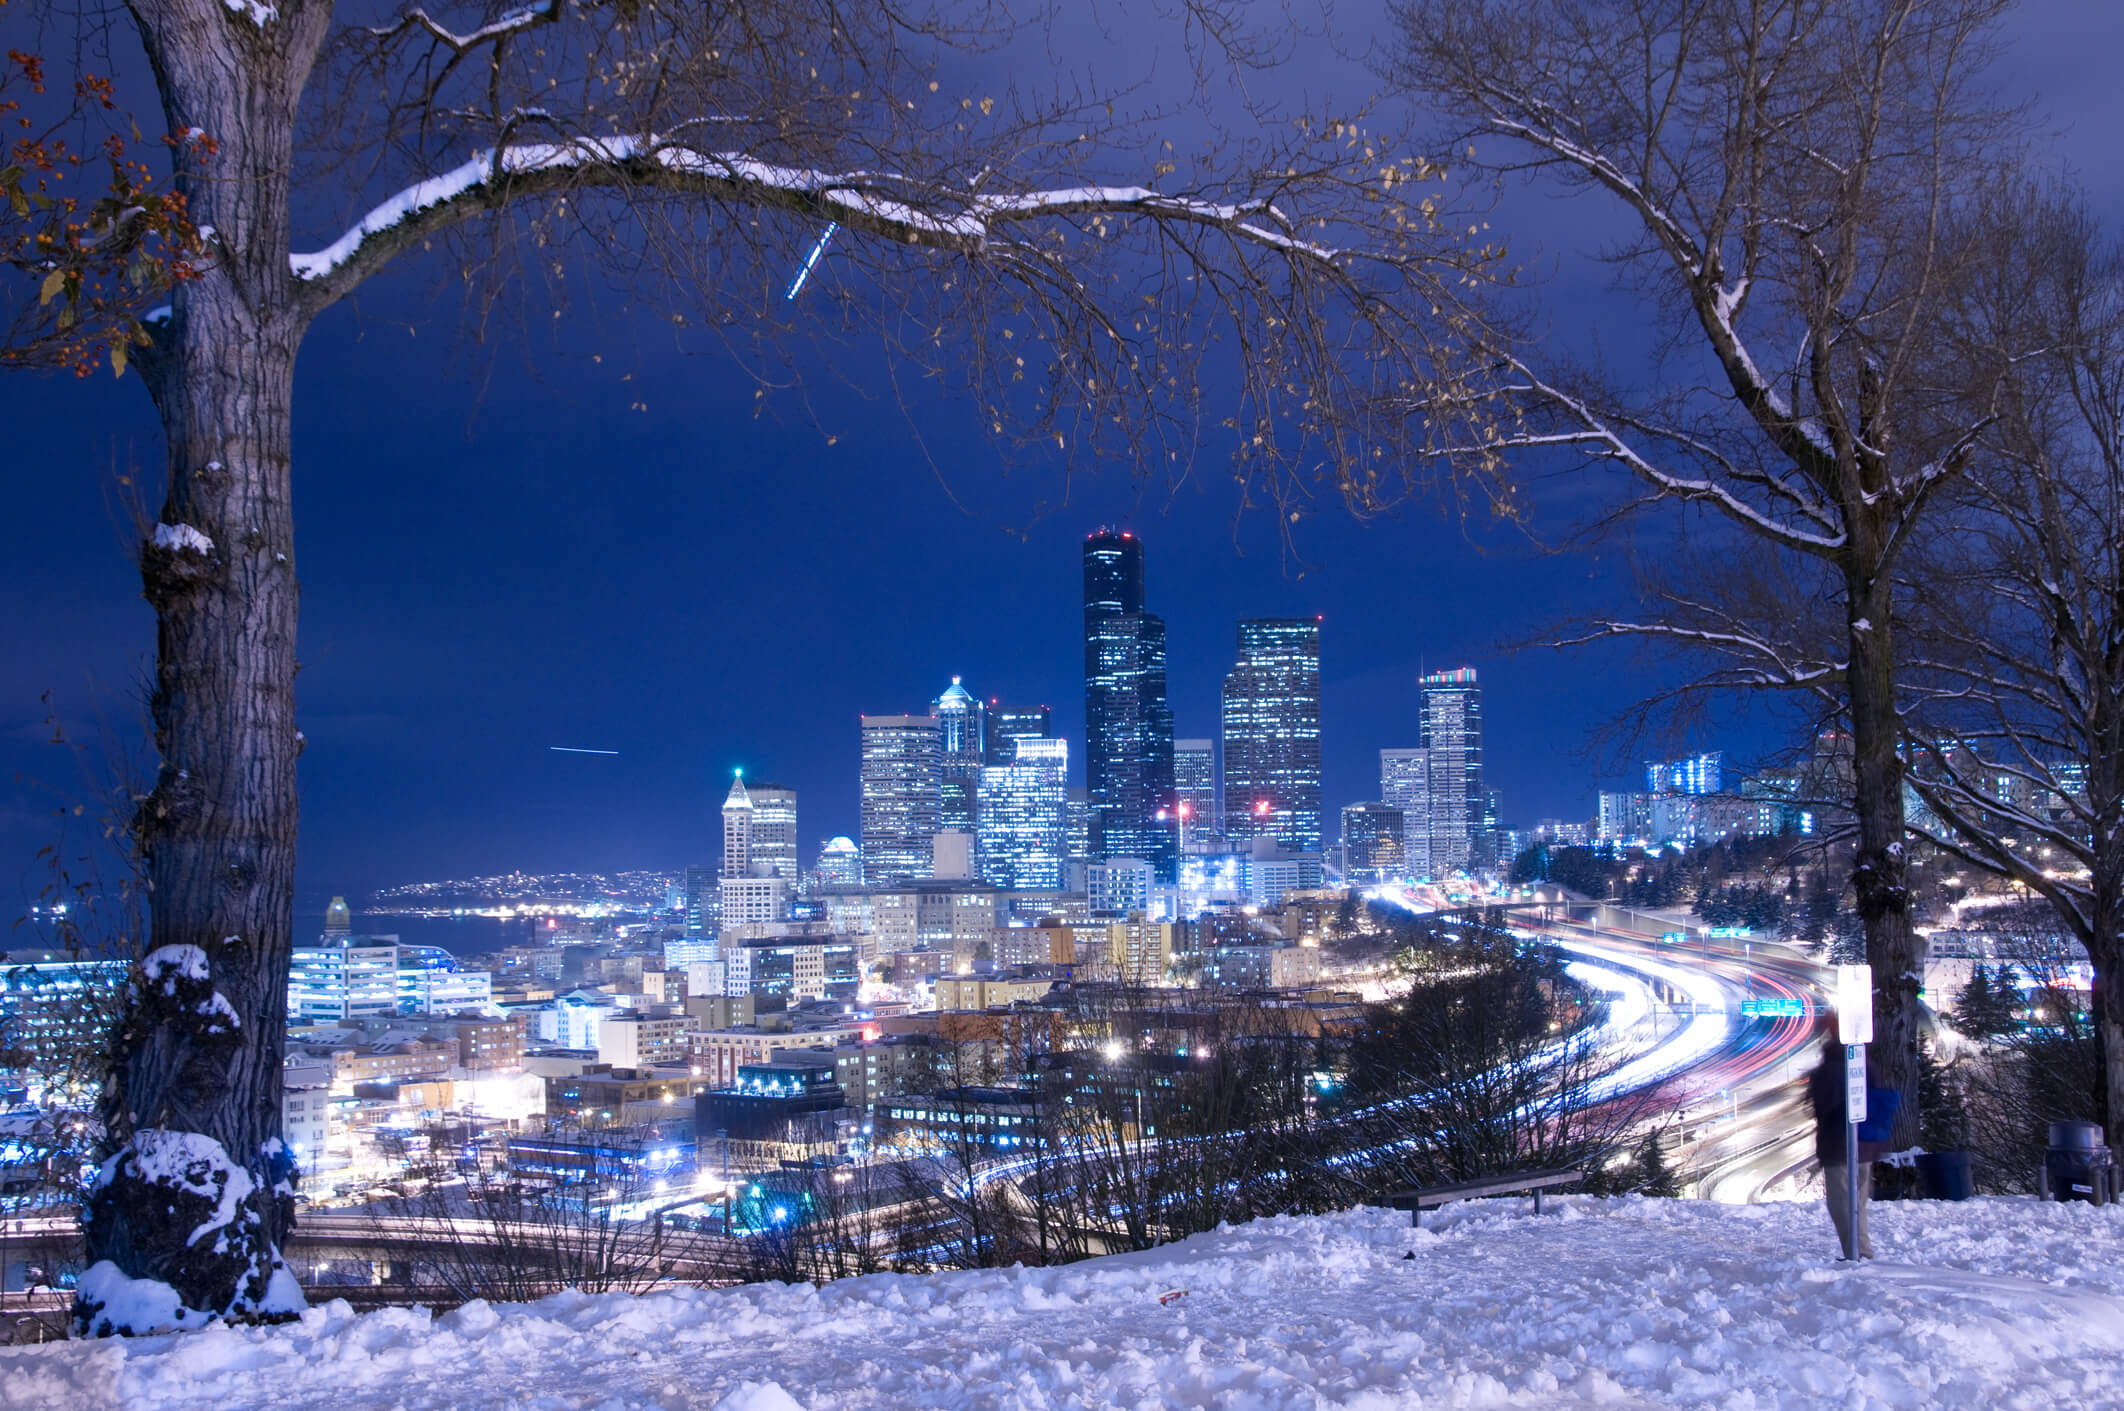 aerial view of seattle washingtone in the winter at night with city lights and snow